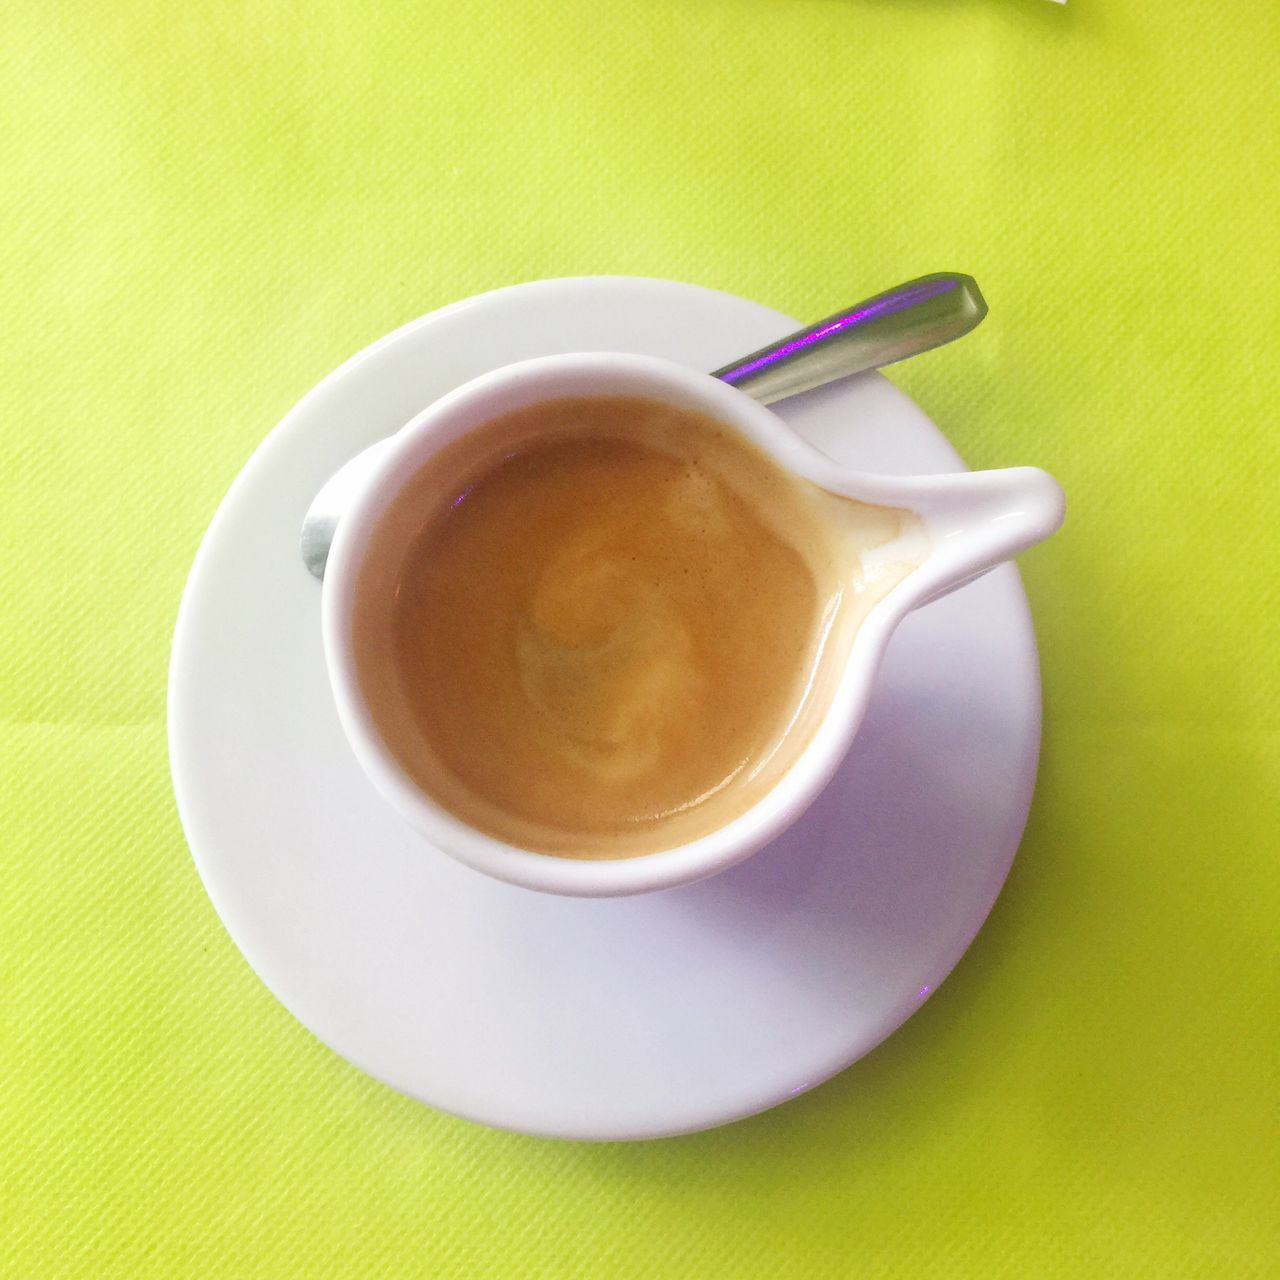 Matin. Drink Refreshment Food And Drink Coffee Cup Saucer Coffee - Drink Freshness Table No People Indoors  Close-up Food Day